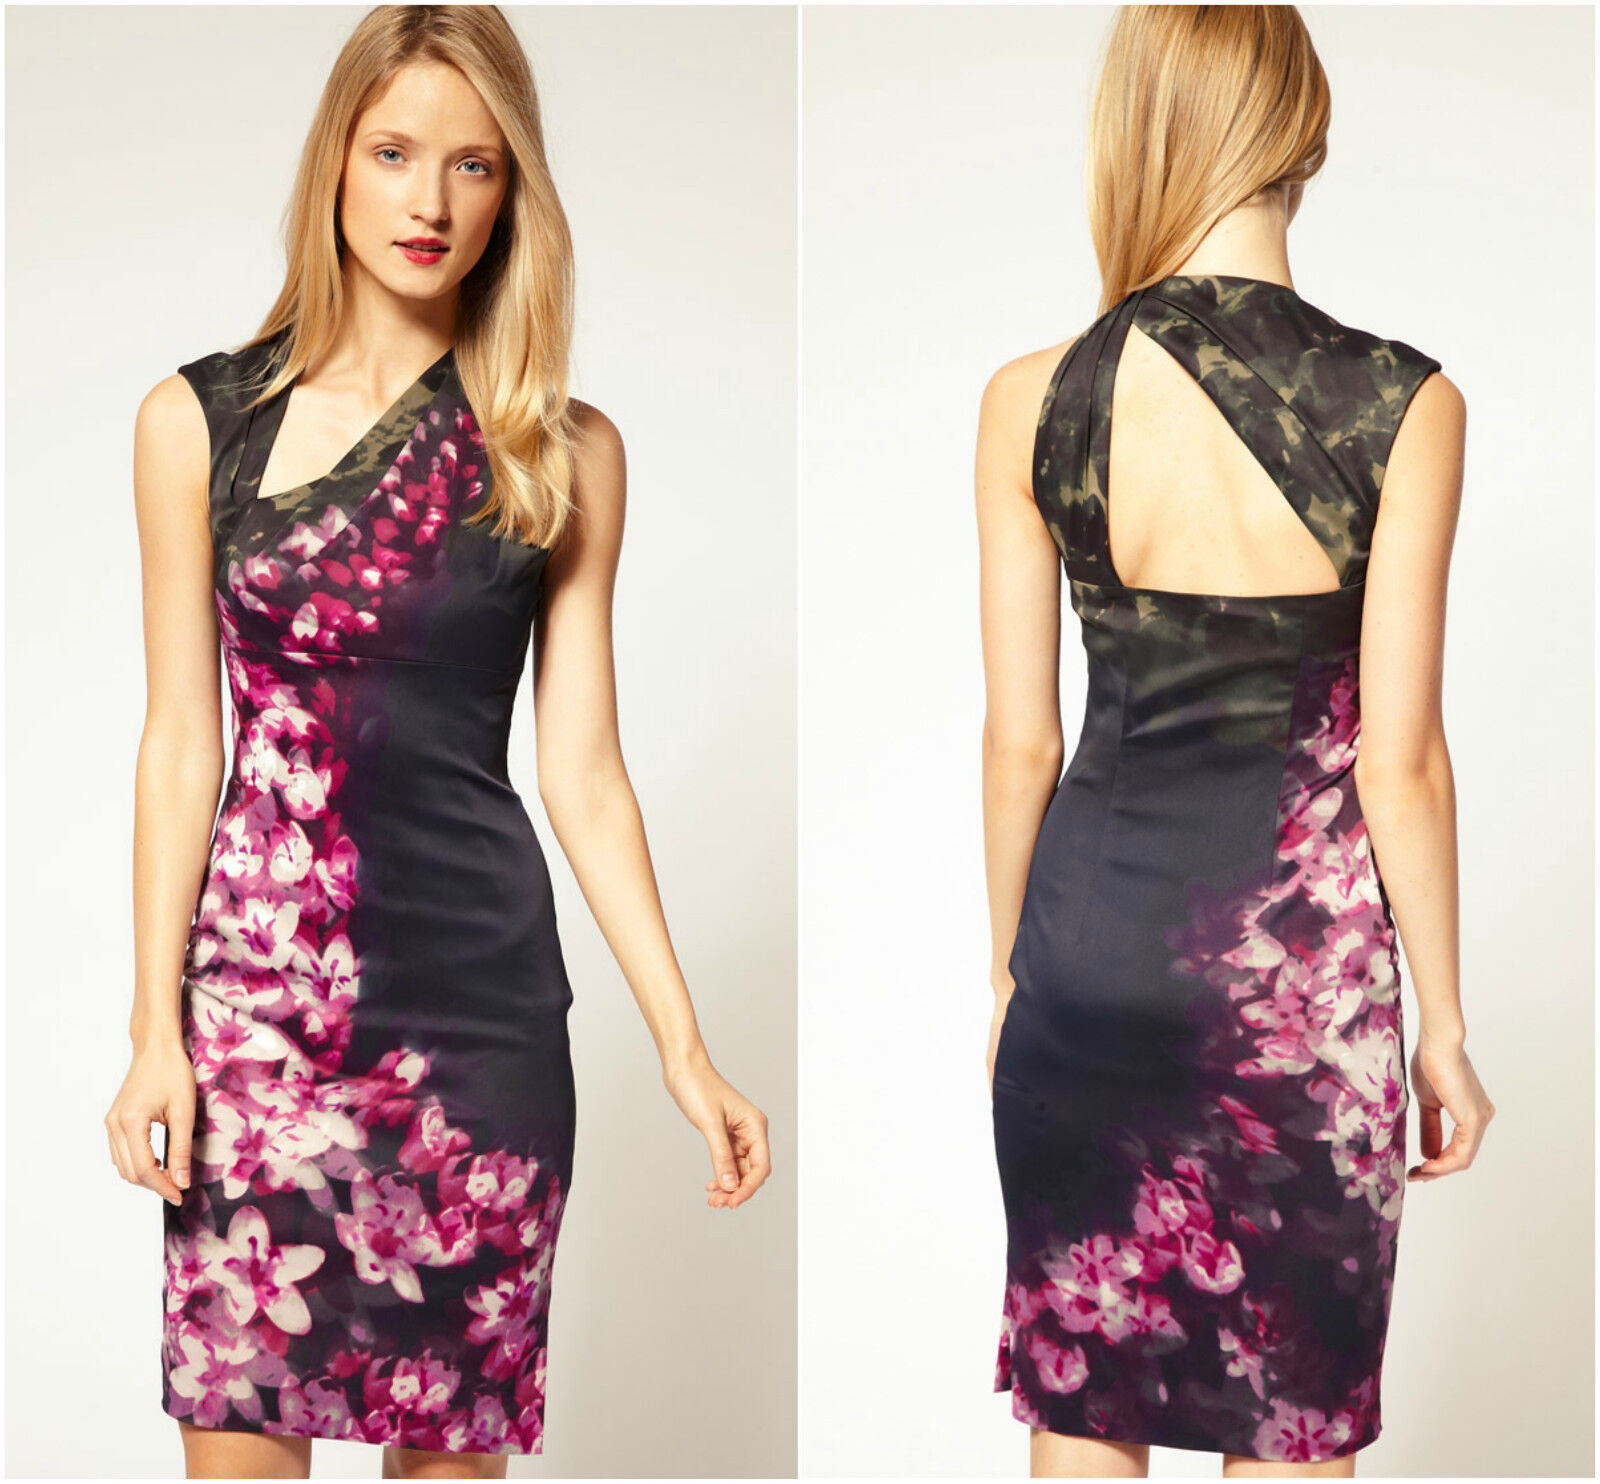 New KAREN MILLEN Floral Print BNWT  Pencil Dress UK Größe 10 12 14